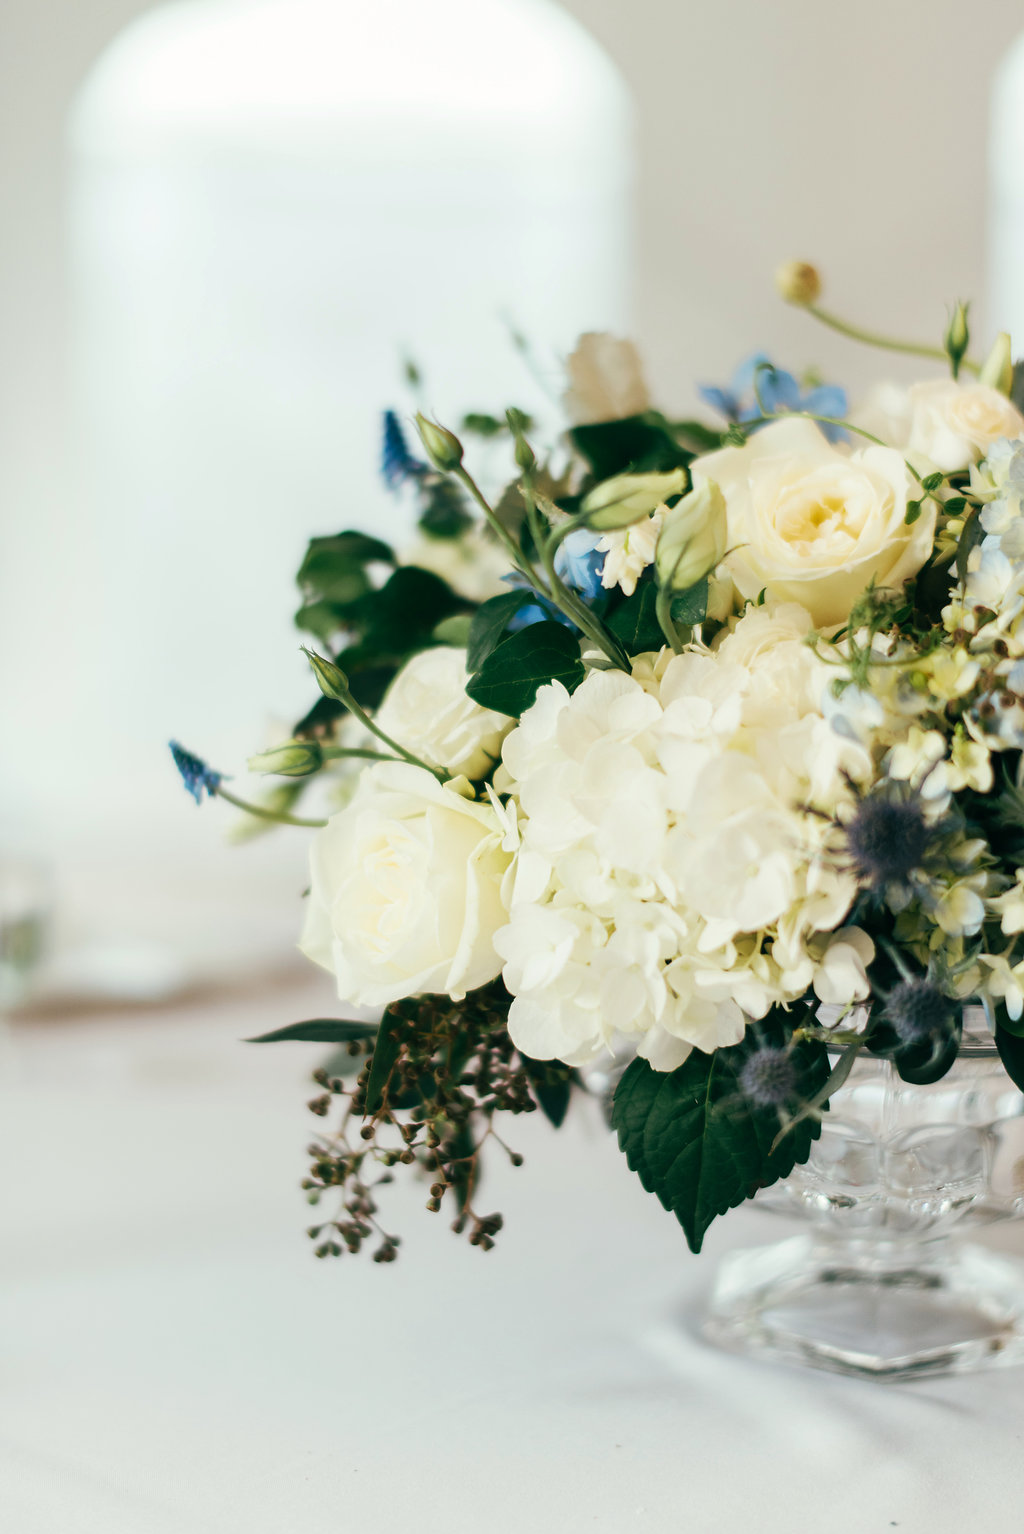 Atelier Ashley Flowers + Woodlawn + Pope Leighhey House + Anna Reynal Photography + DC Weddings + DC Florist + centerpiece + dusty blue and white